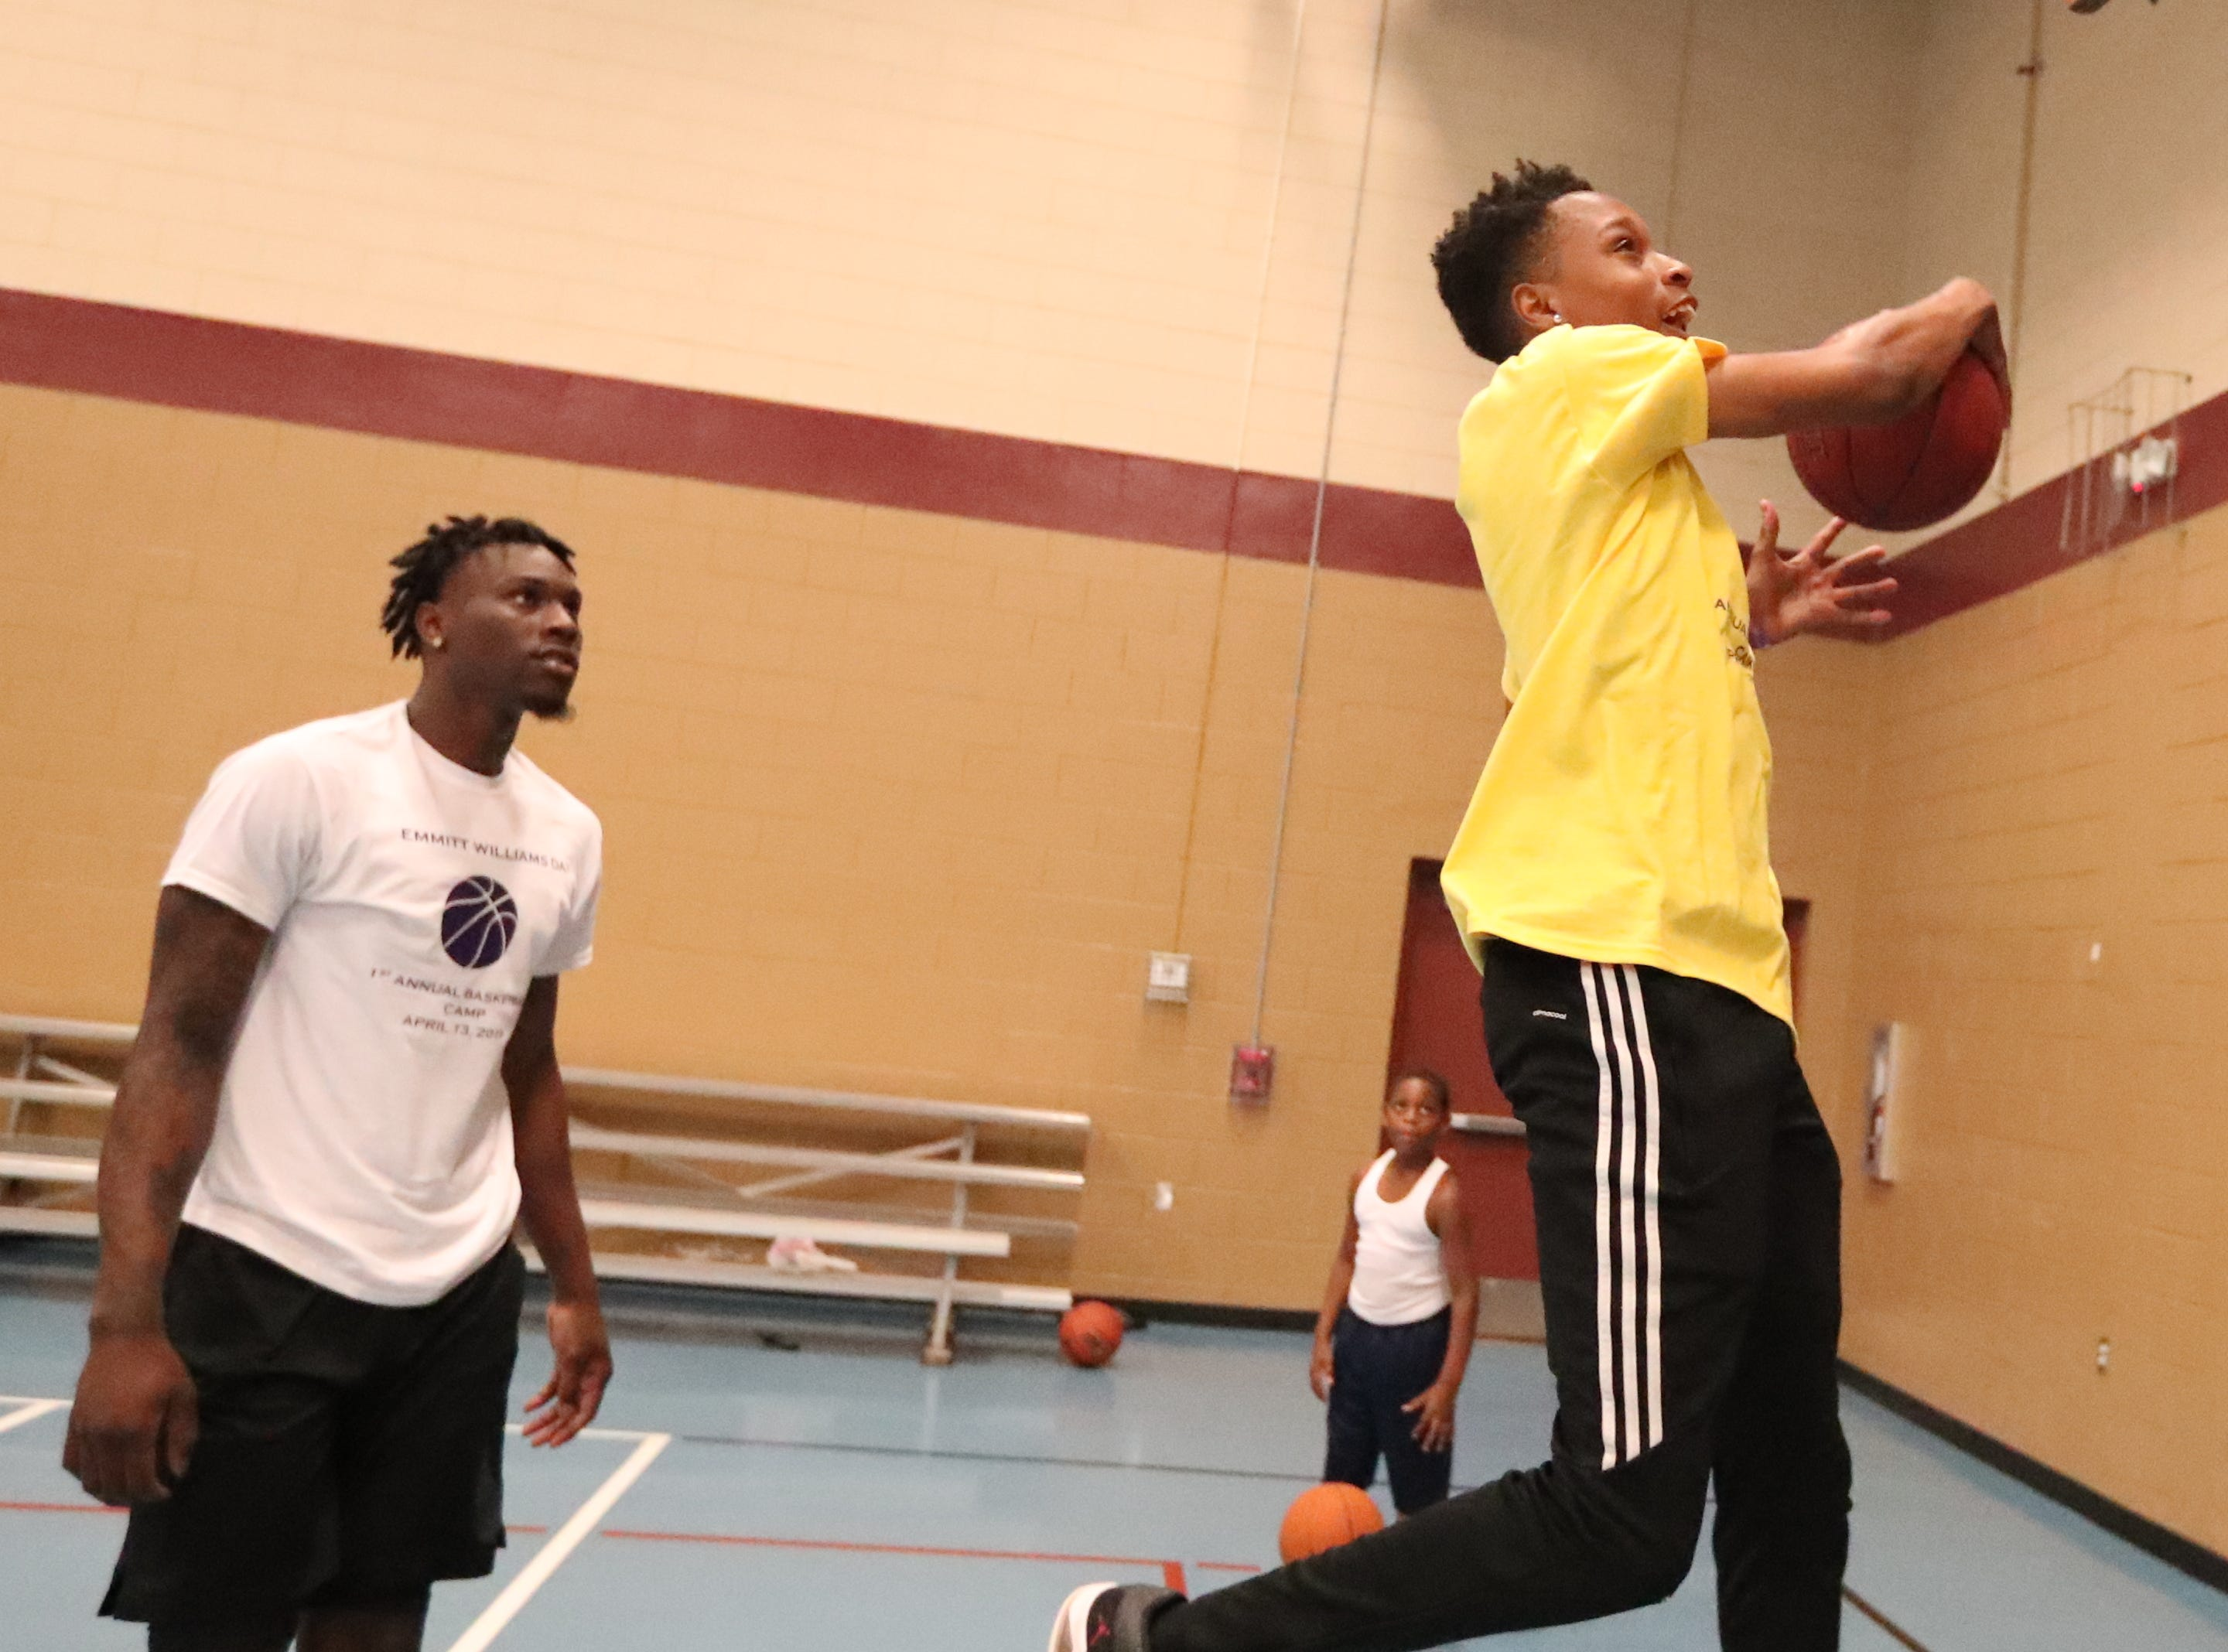 Emmitt Williams, a Fort Myers native who played at Lehigh his freshman year and just finished his freshman season at LSU, declared for the NBA Draft on Thursday night. Williams hosted a youth camp at the STARS Complex in Fort Myers, FL, on Saturday, April 13, 2019.